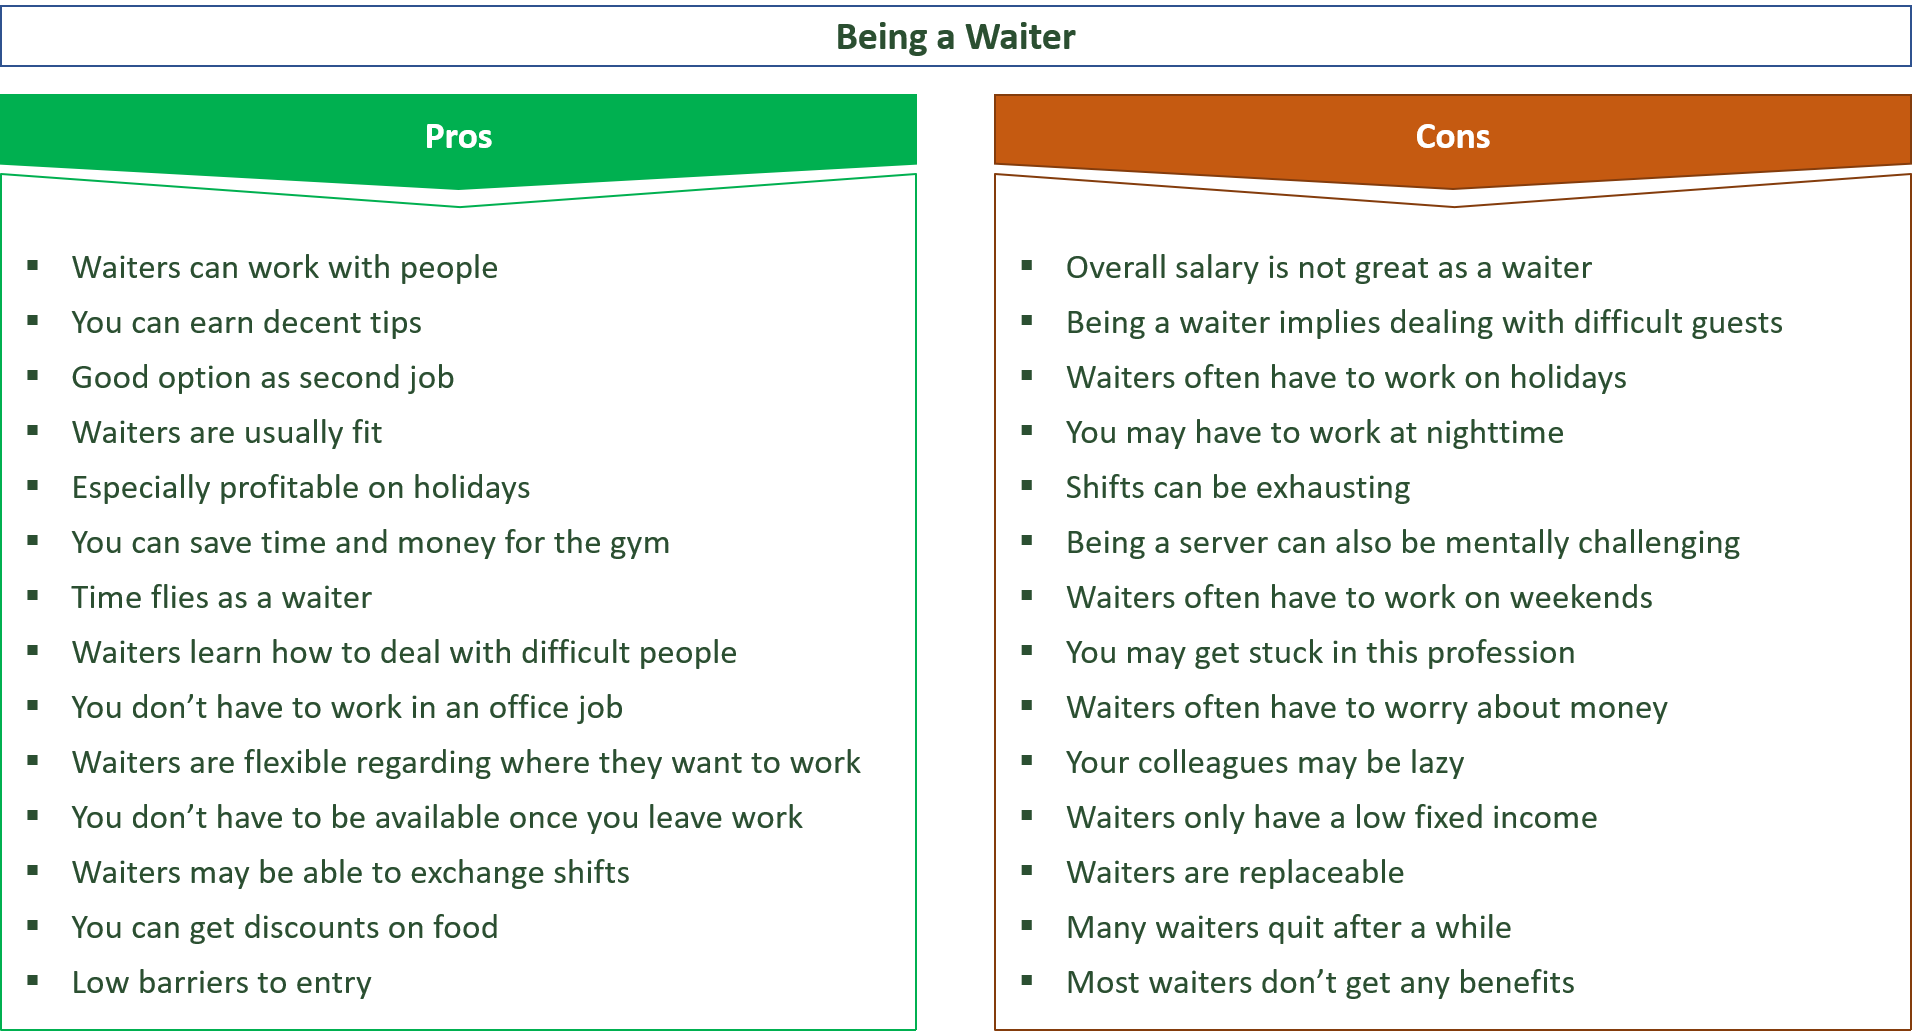 advantages and disadvantages of being a waiter